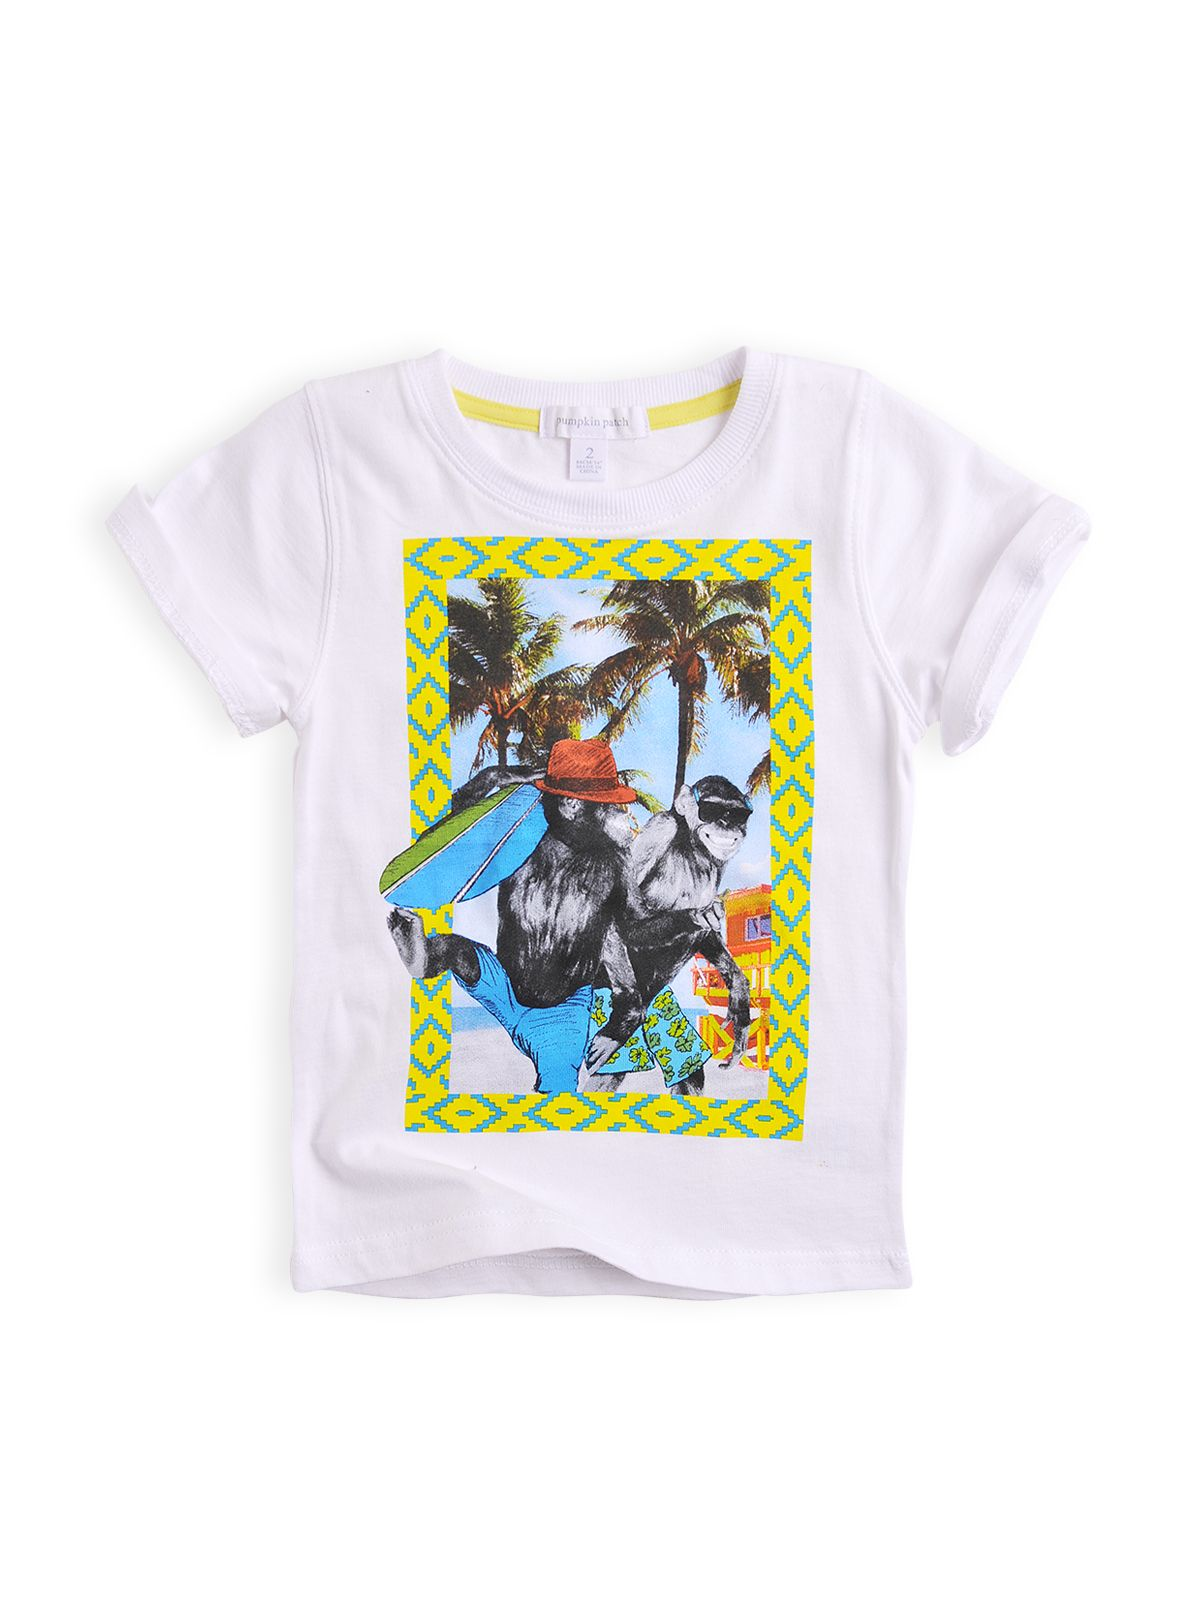 Boys printed short sleeve t-shirt